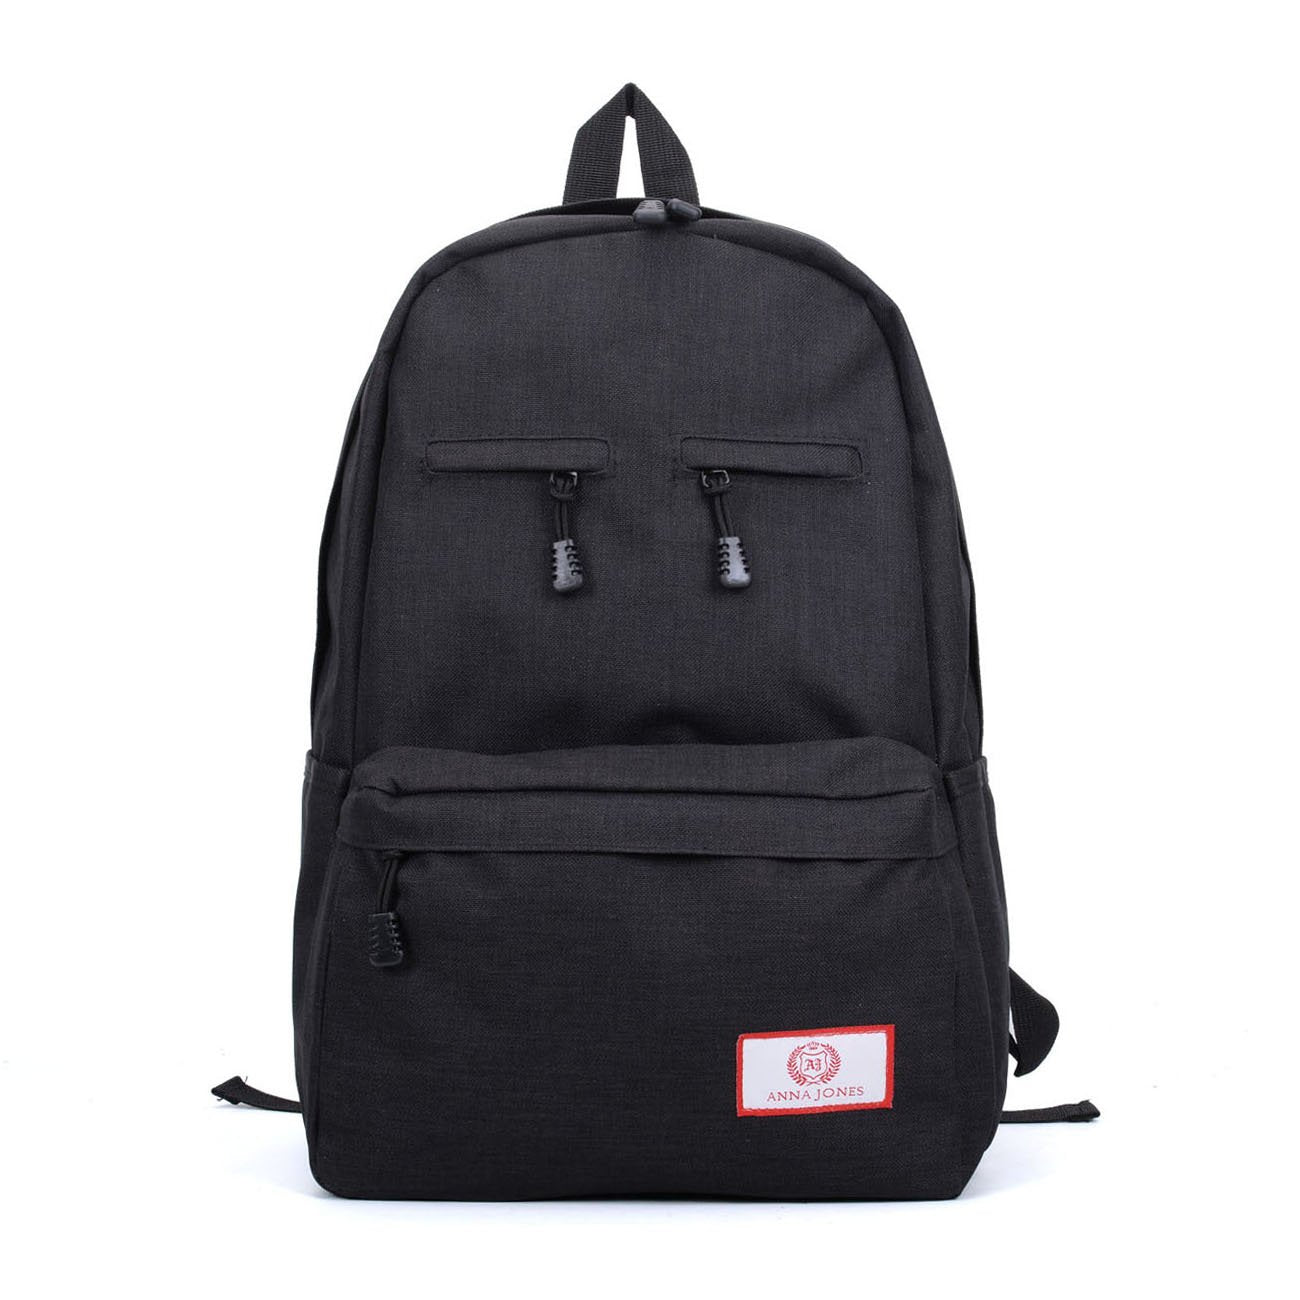 Black - Simple Solid Travel Oxford Backpack School Rucksack